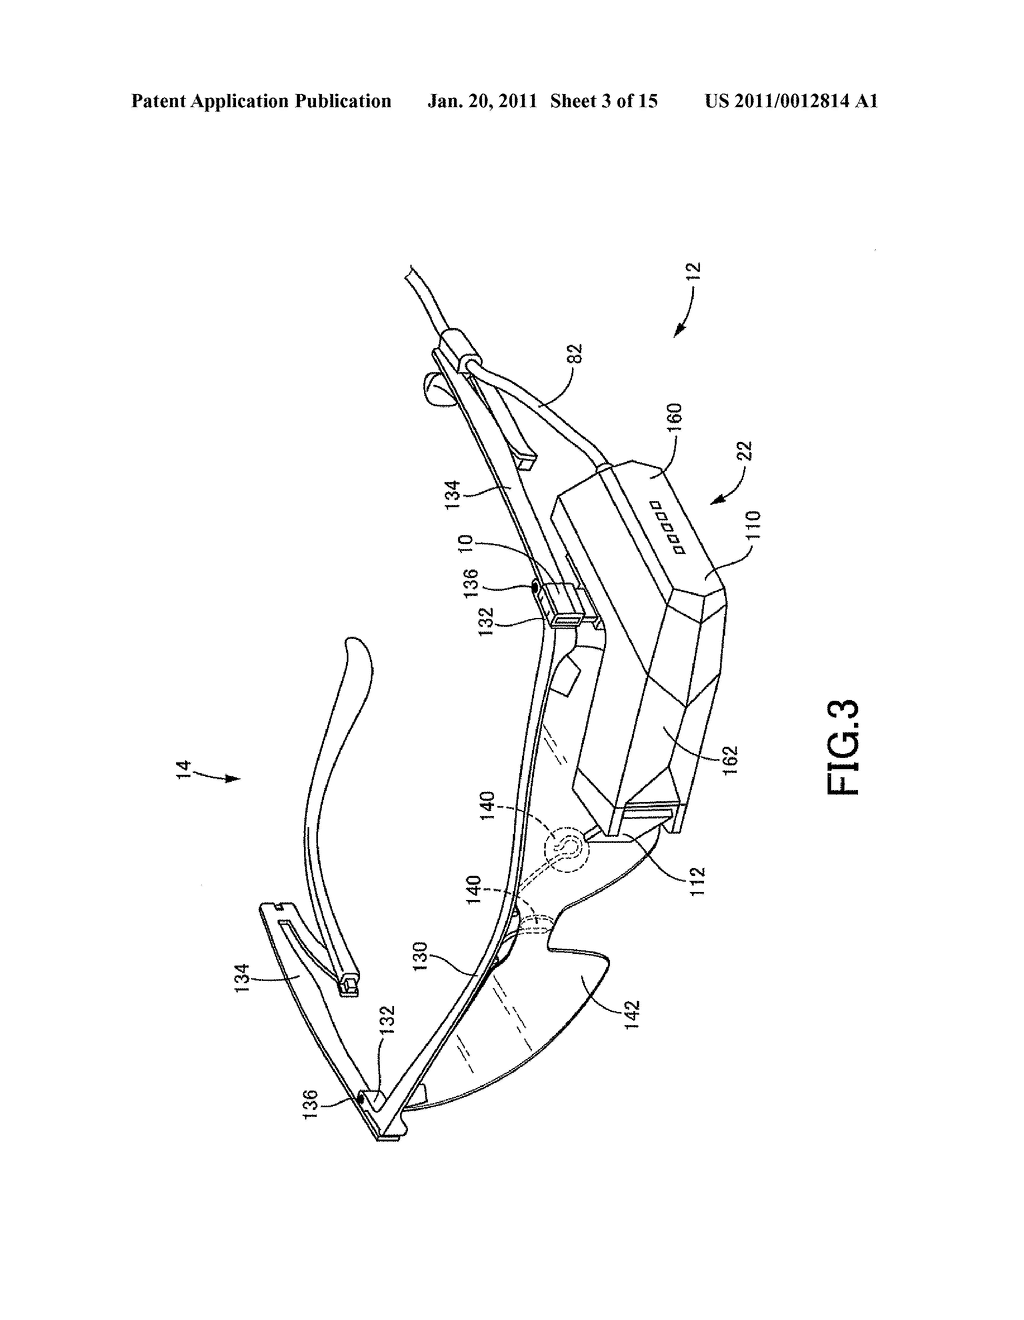 Adjustable Attachment for Attaching Head-Mounted Display to Eyeglasses-Type Frame - diagram, schematic, and image 04